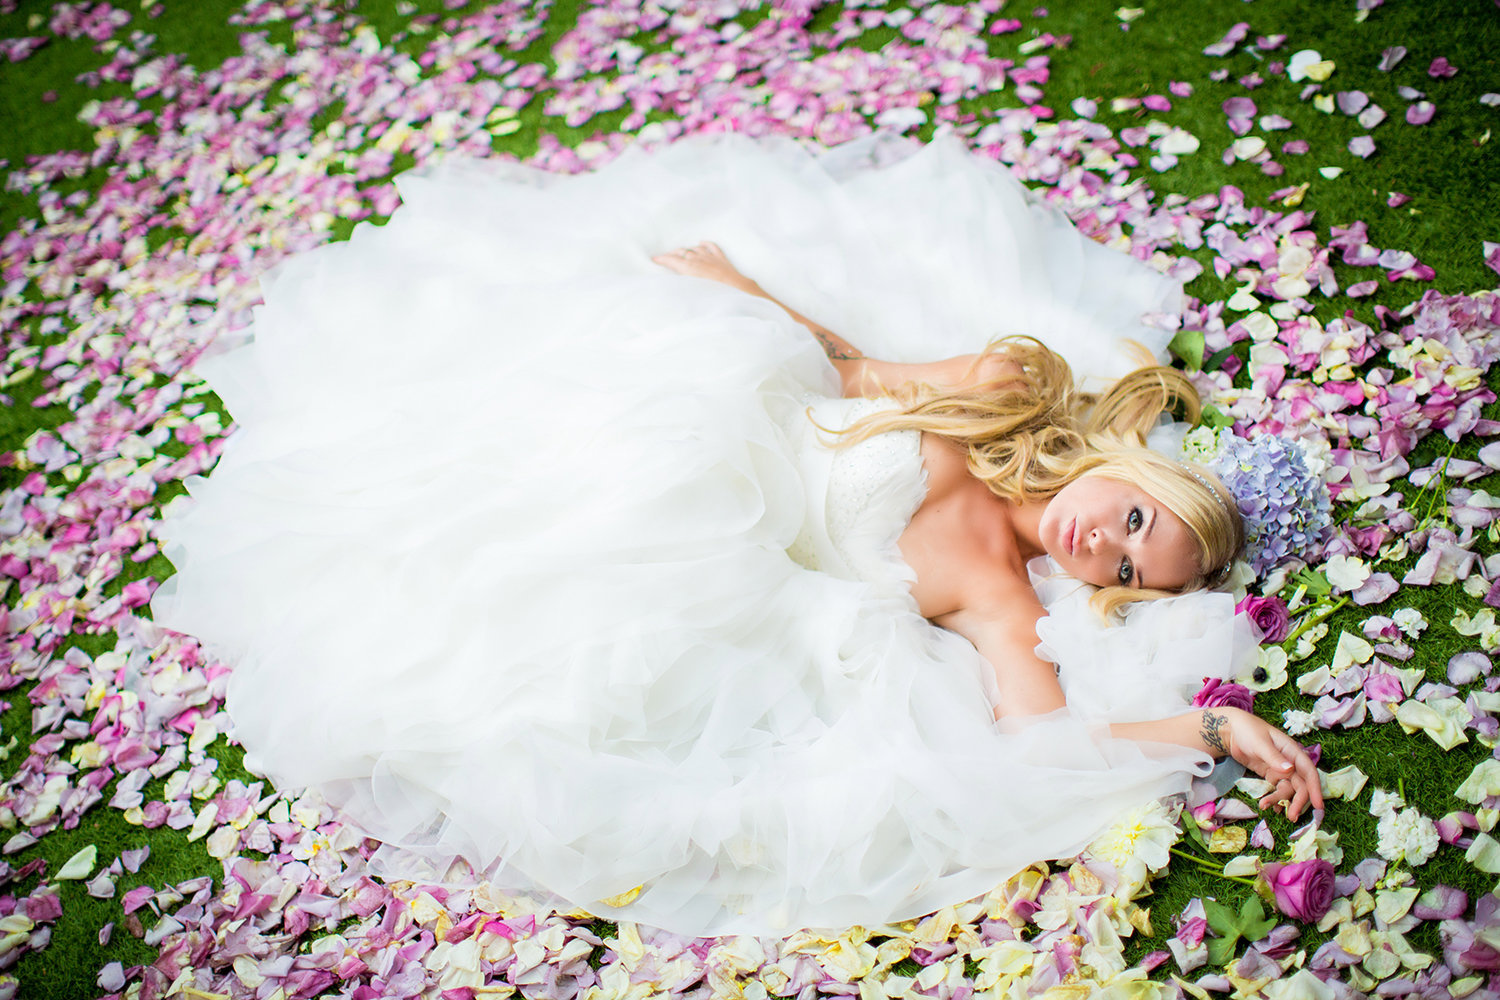 Beautiful bride laying on a bed of rose petals